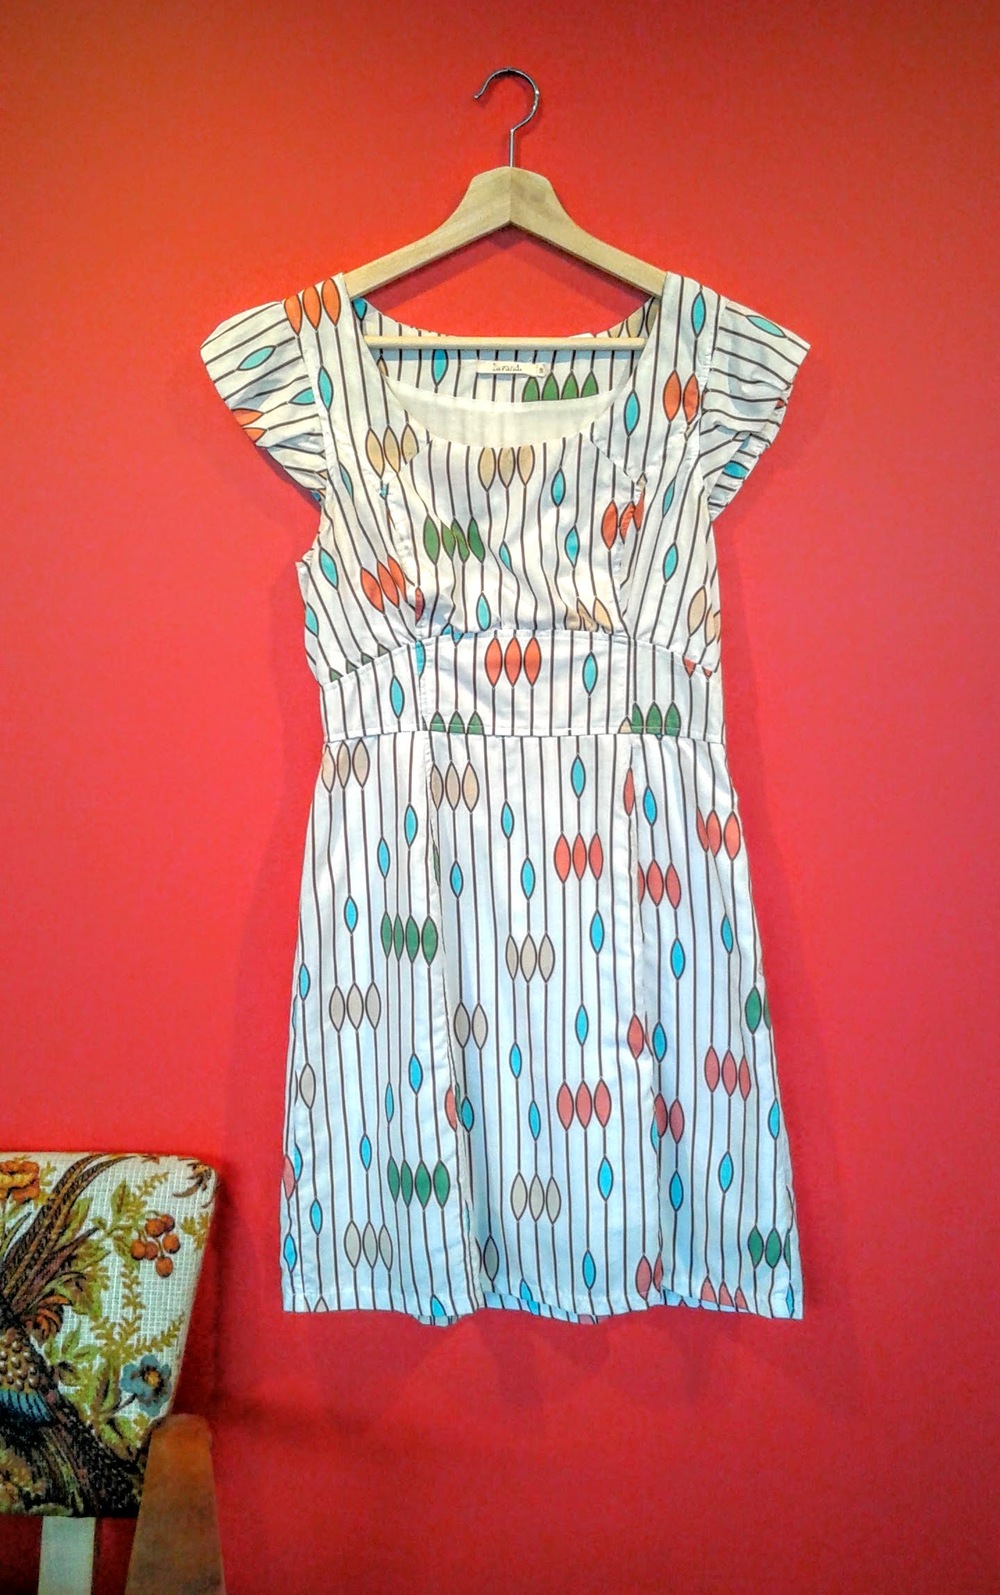 Lavland. dress; Size S, $26